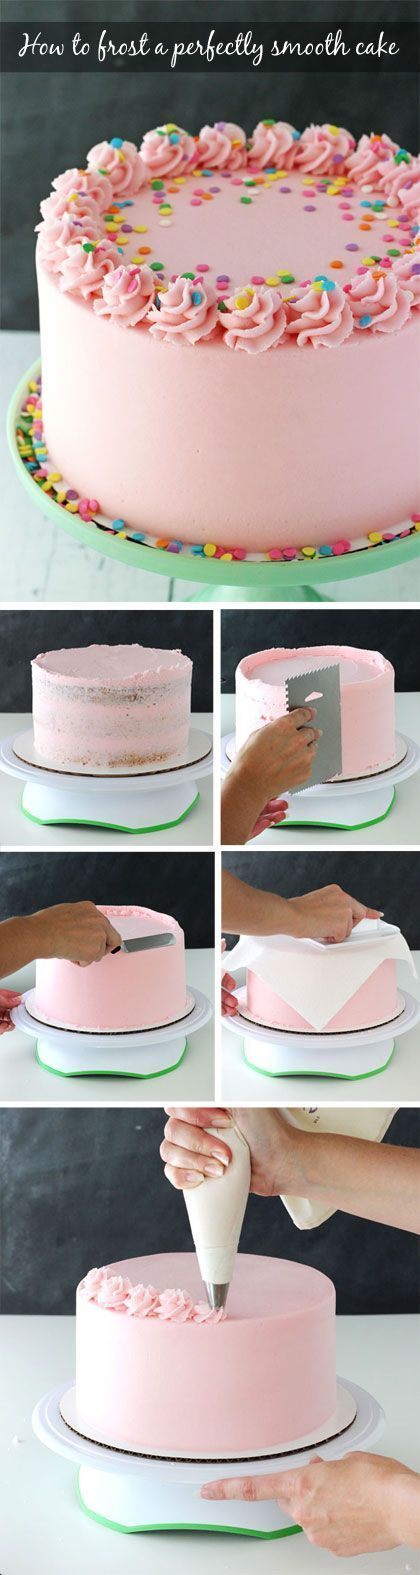 How to make icing sugar for birthday cakes